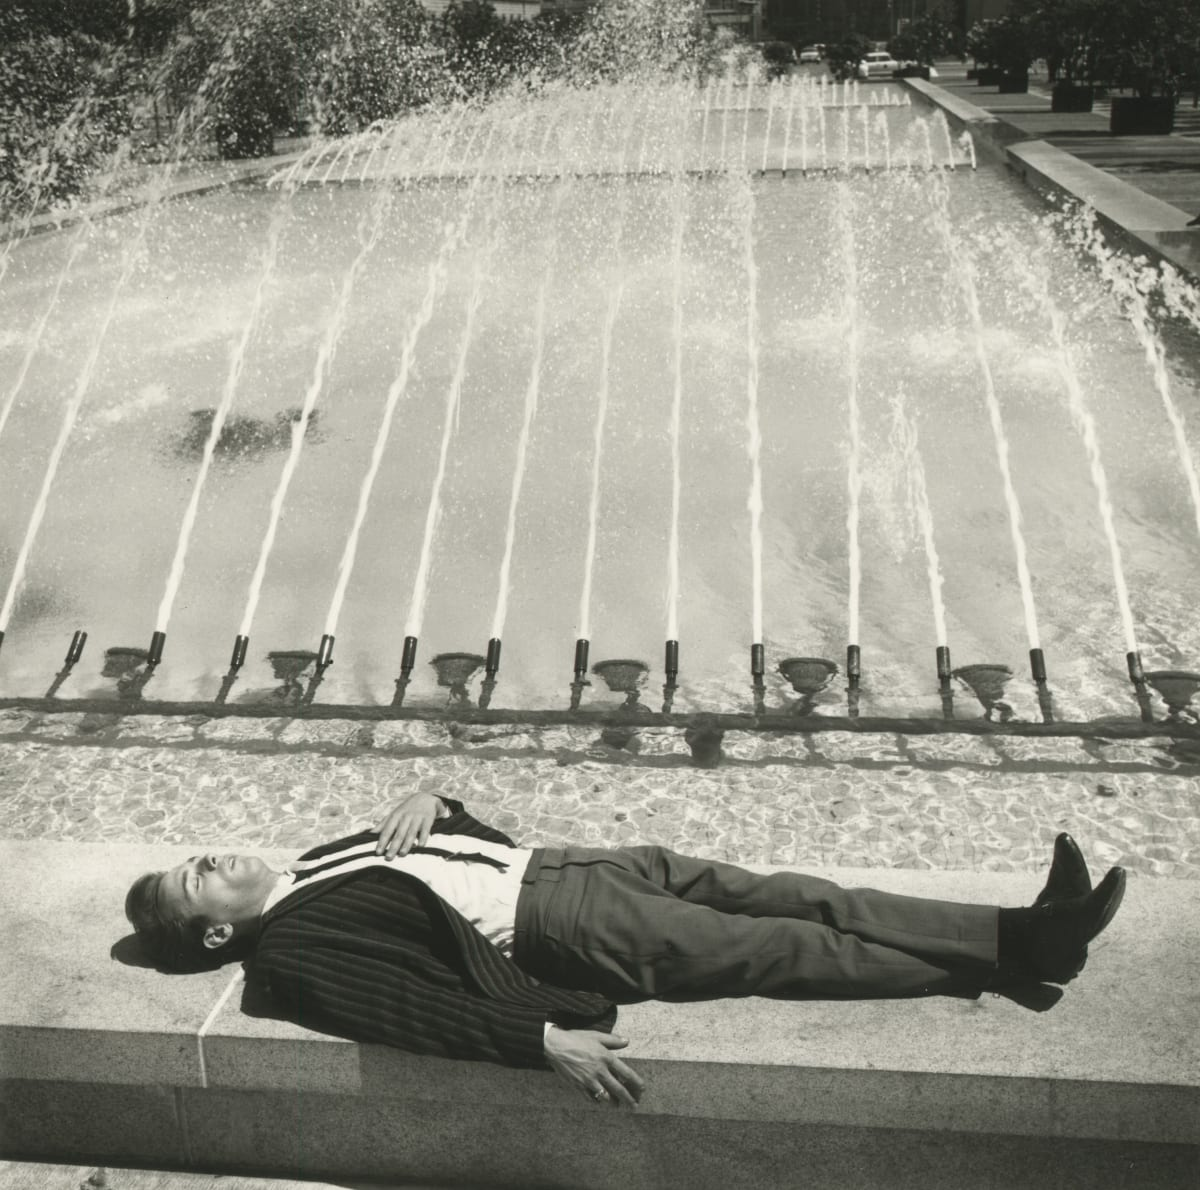 Arthur Tress, Man by Fountain, Civic Center Plaza, San Francisco, 1964